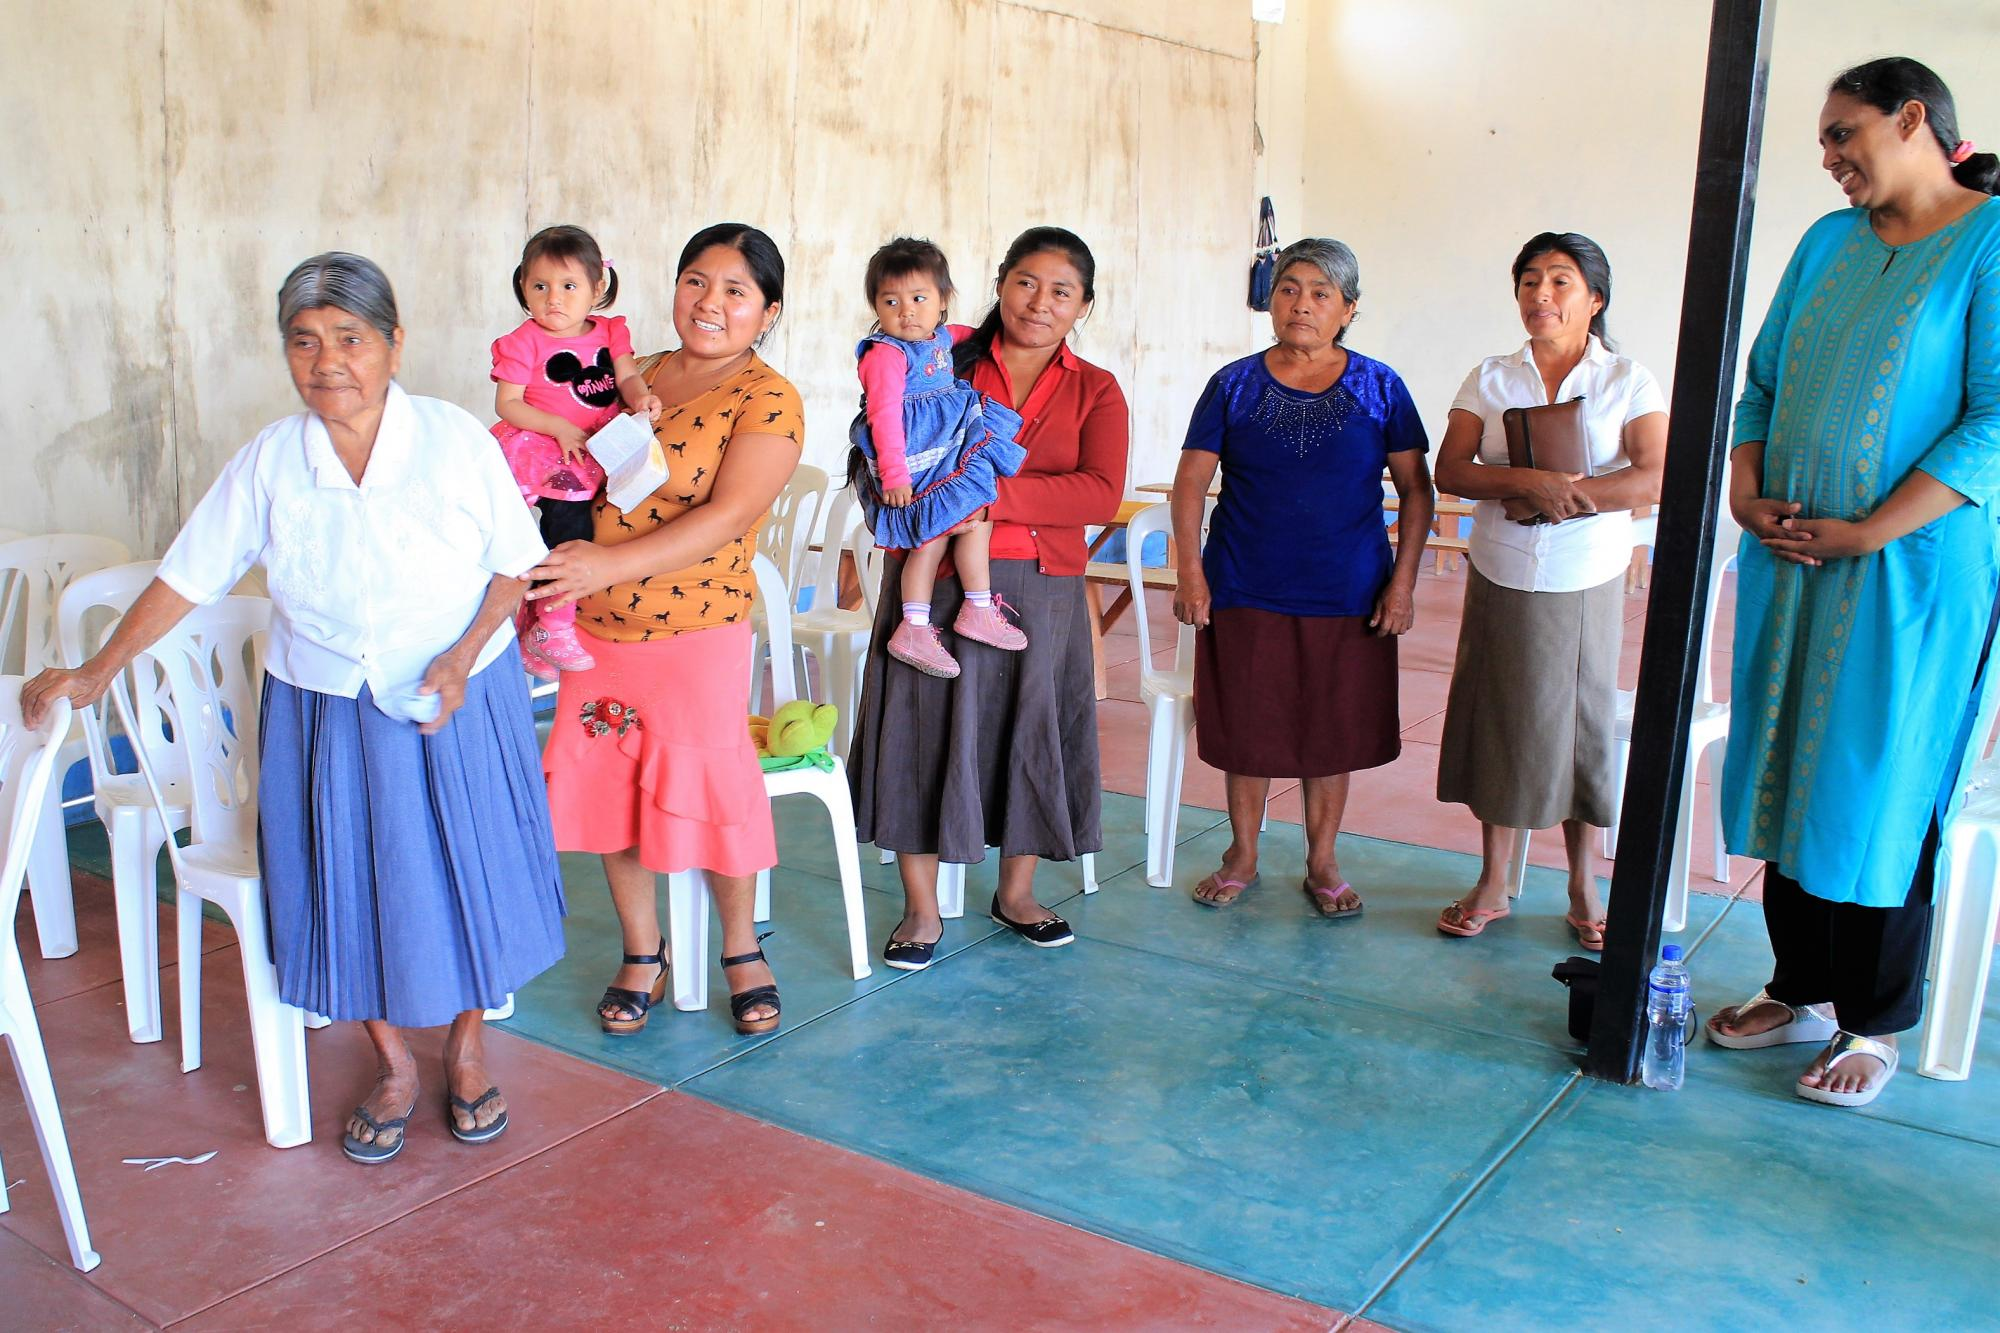 Faustina Valencia (blue shirt), a member of Iglesia Hermanos Menonitas Nuevo Paraíso (New Paradise Mennonite Brethren church) who was suffering with breast cancer, had her house washed away. Yet, the day the delegation met in her village with the local congregation, she offered food in her home. Photo: Henk Stenvers